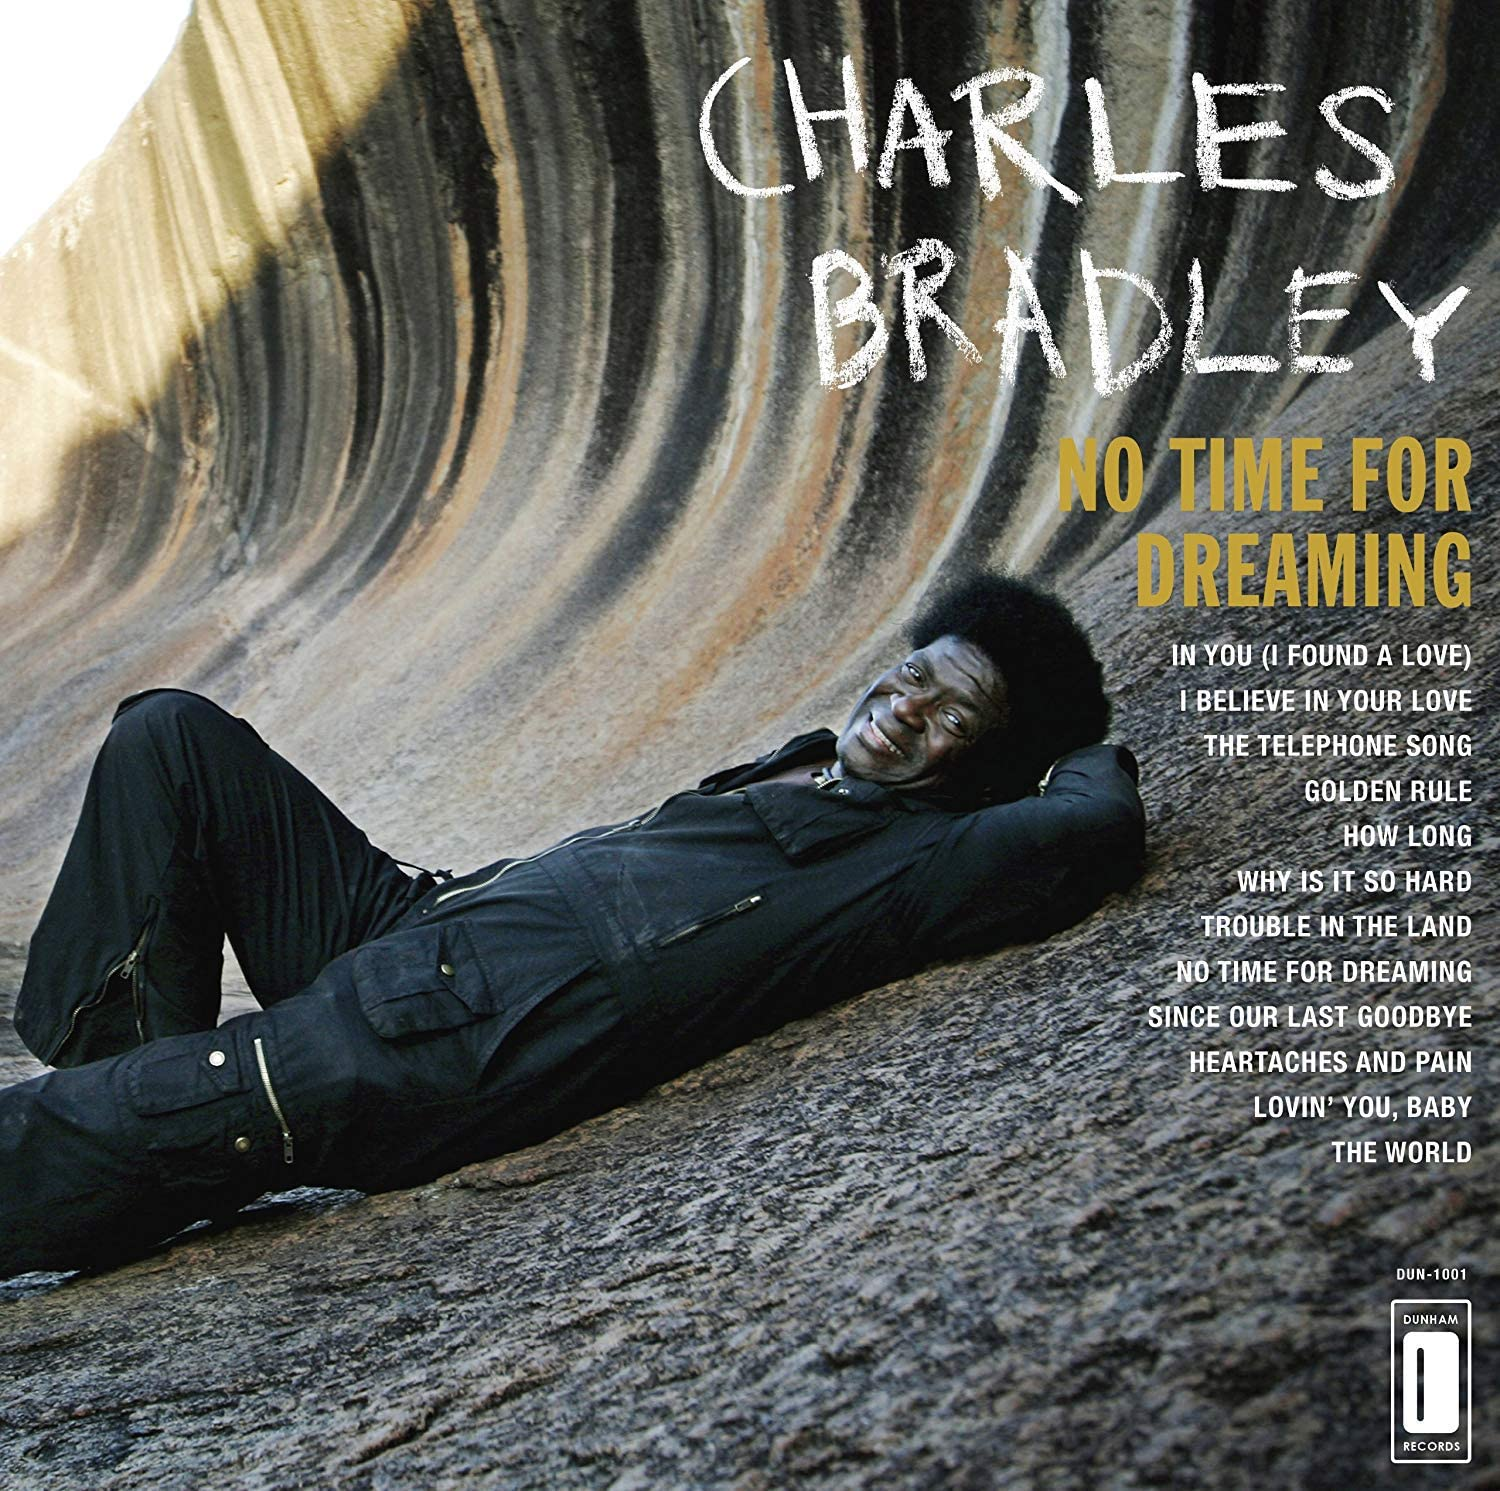 Bradley, Charles/No Time For Dreaming (Expanded) [CD]